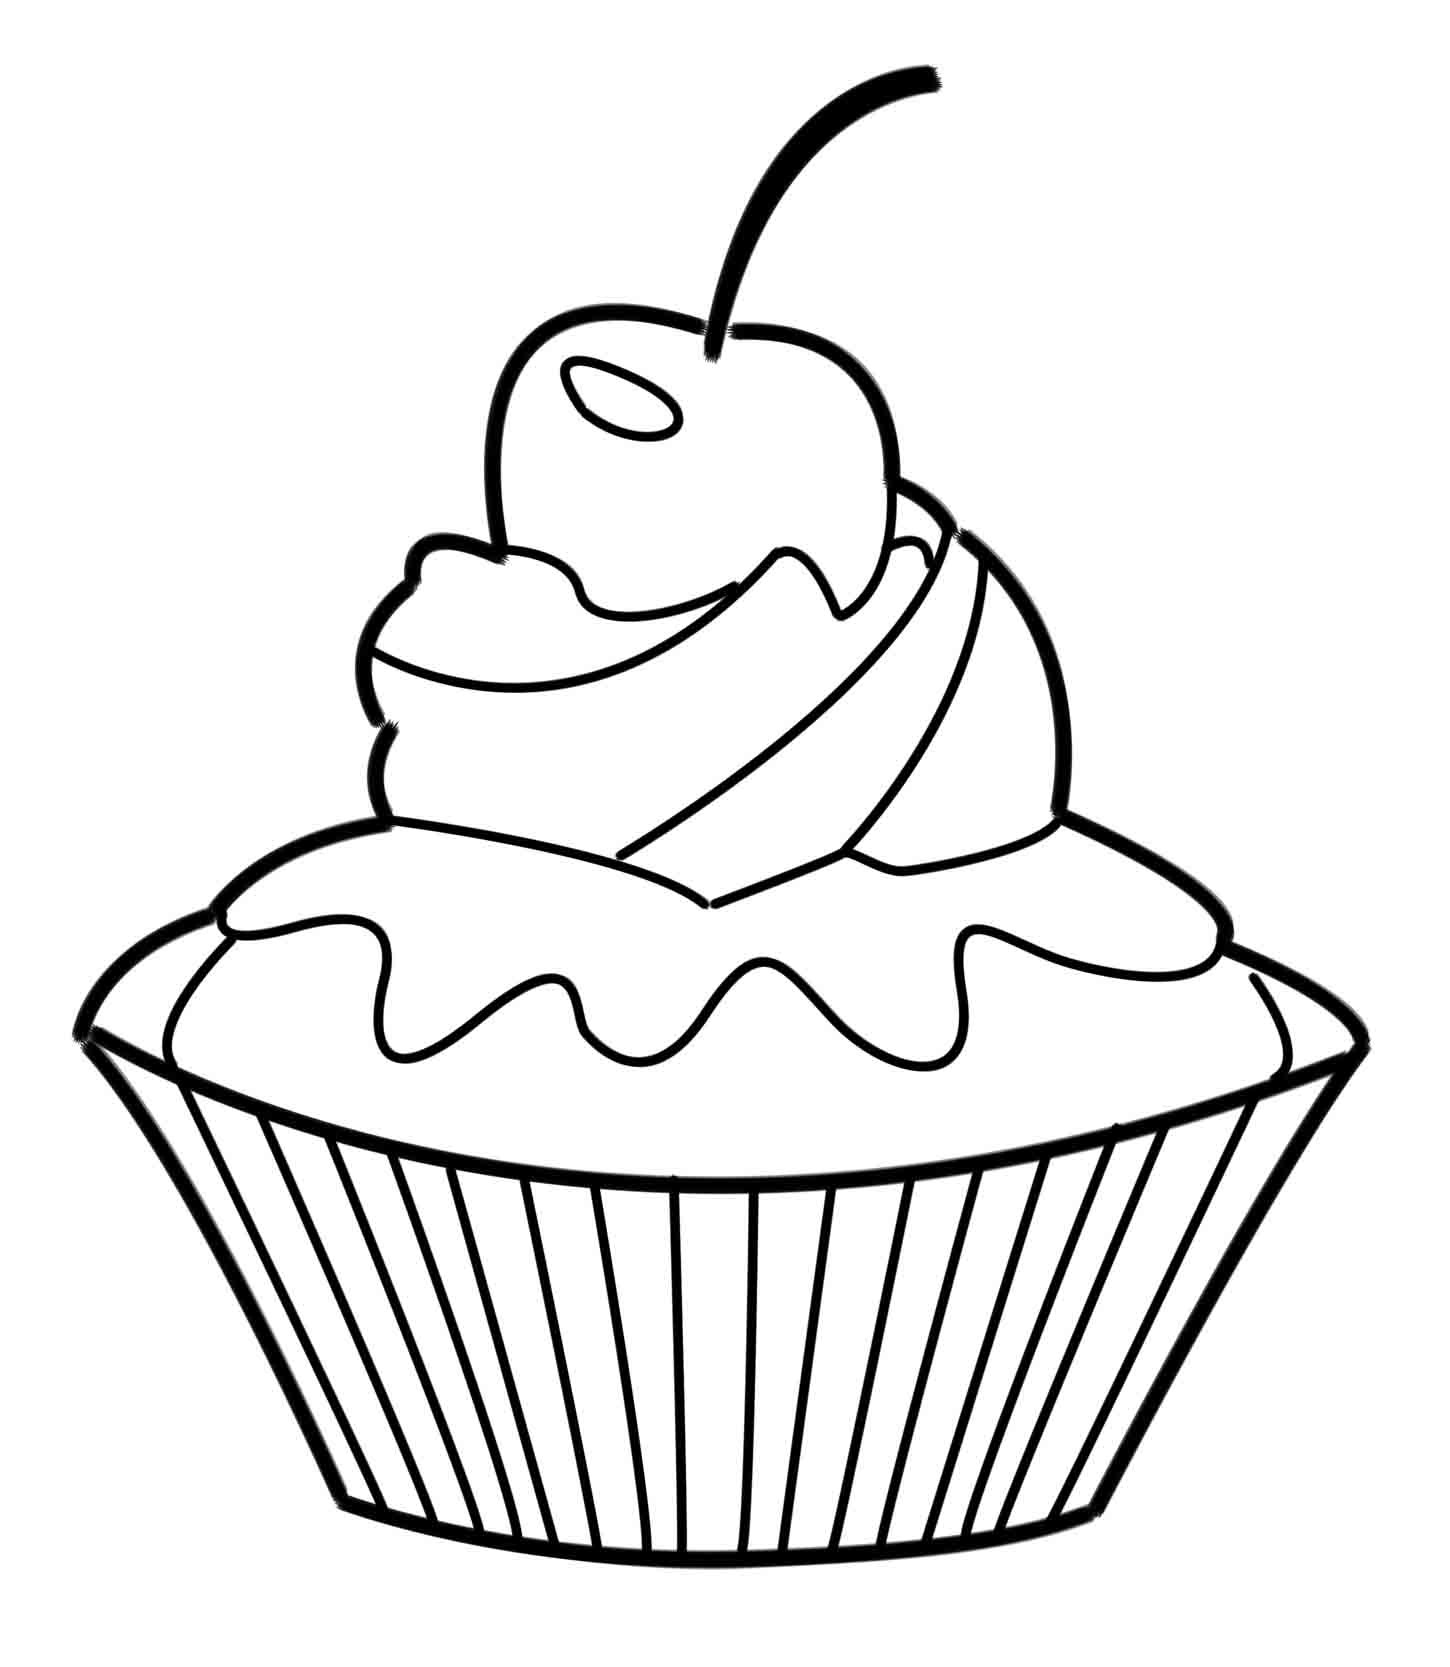 1450x1667 Fresh Cupcake Coloring Pages Advance